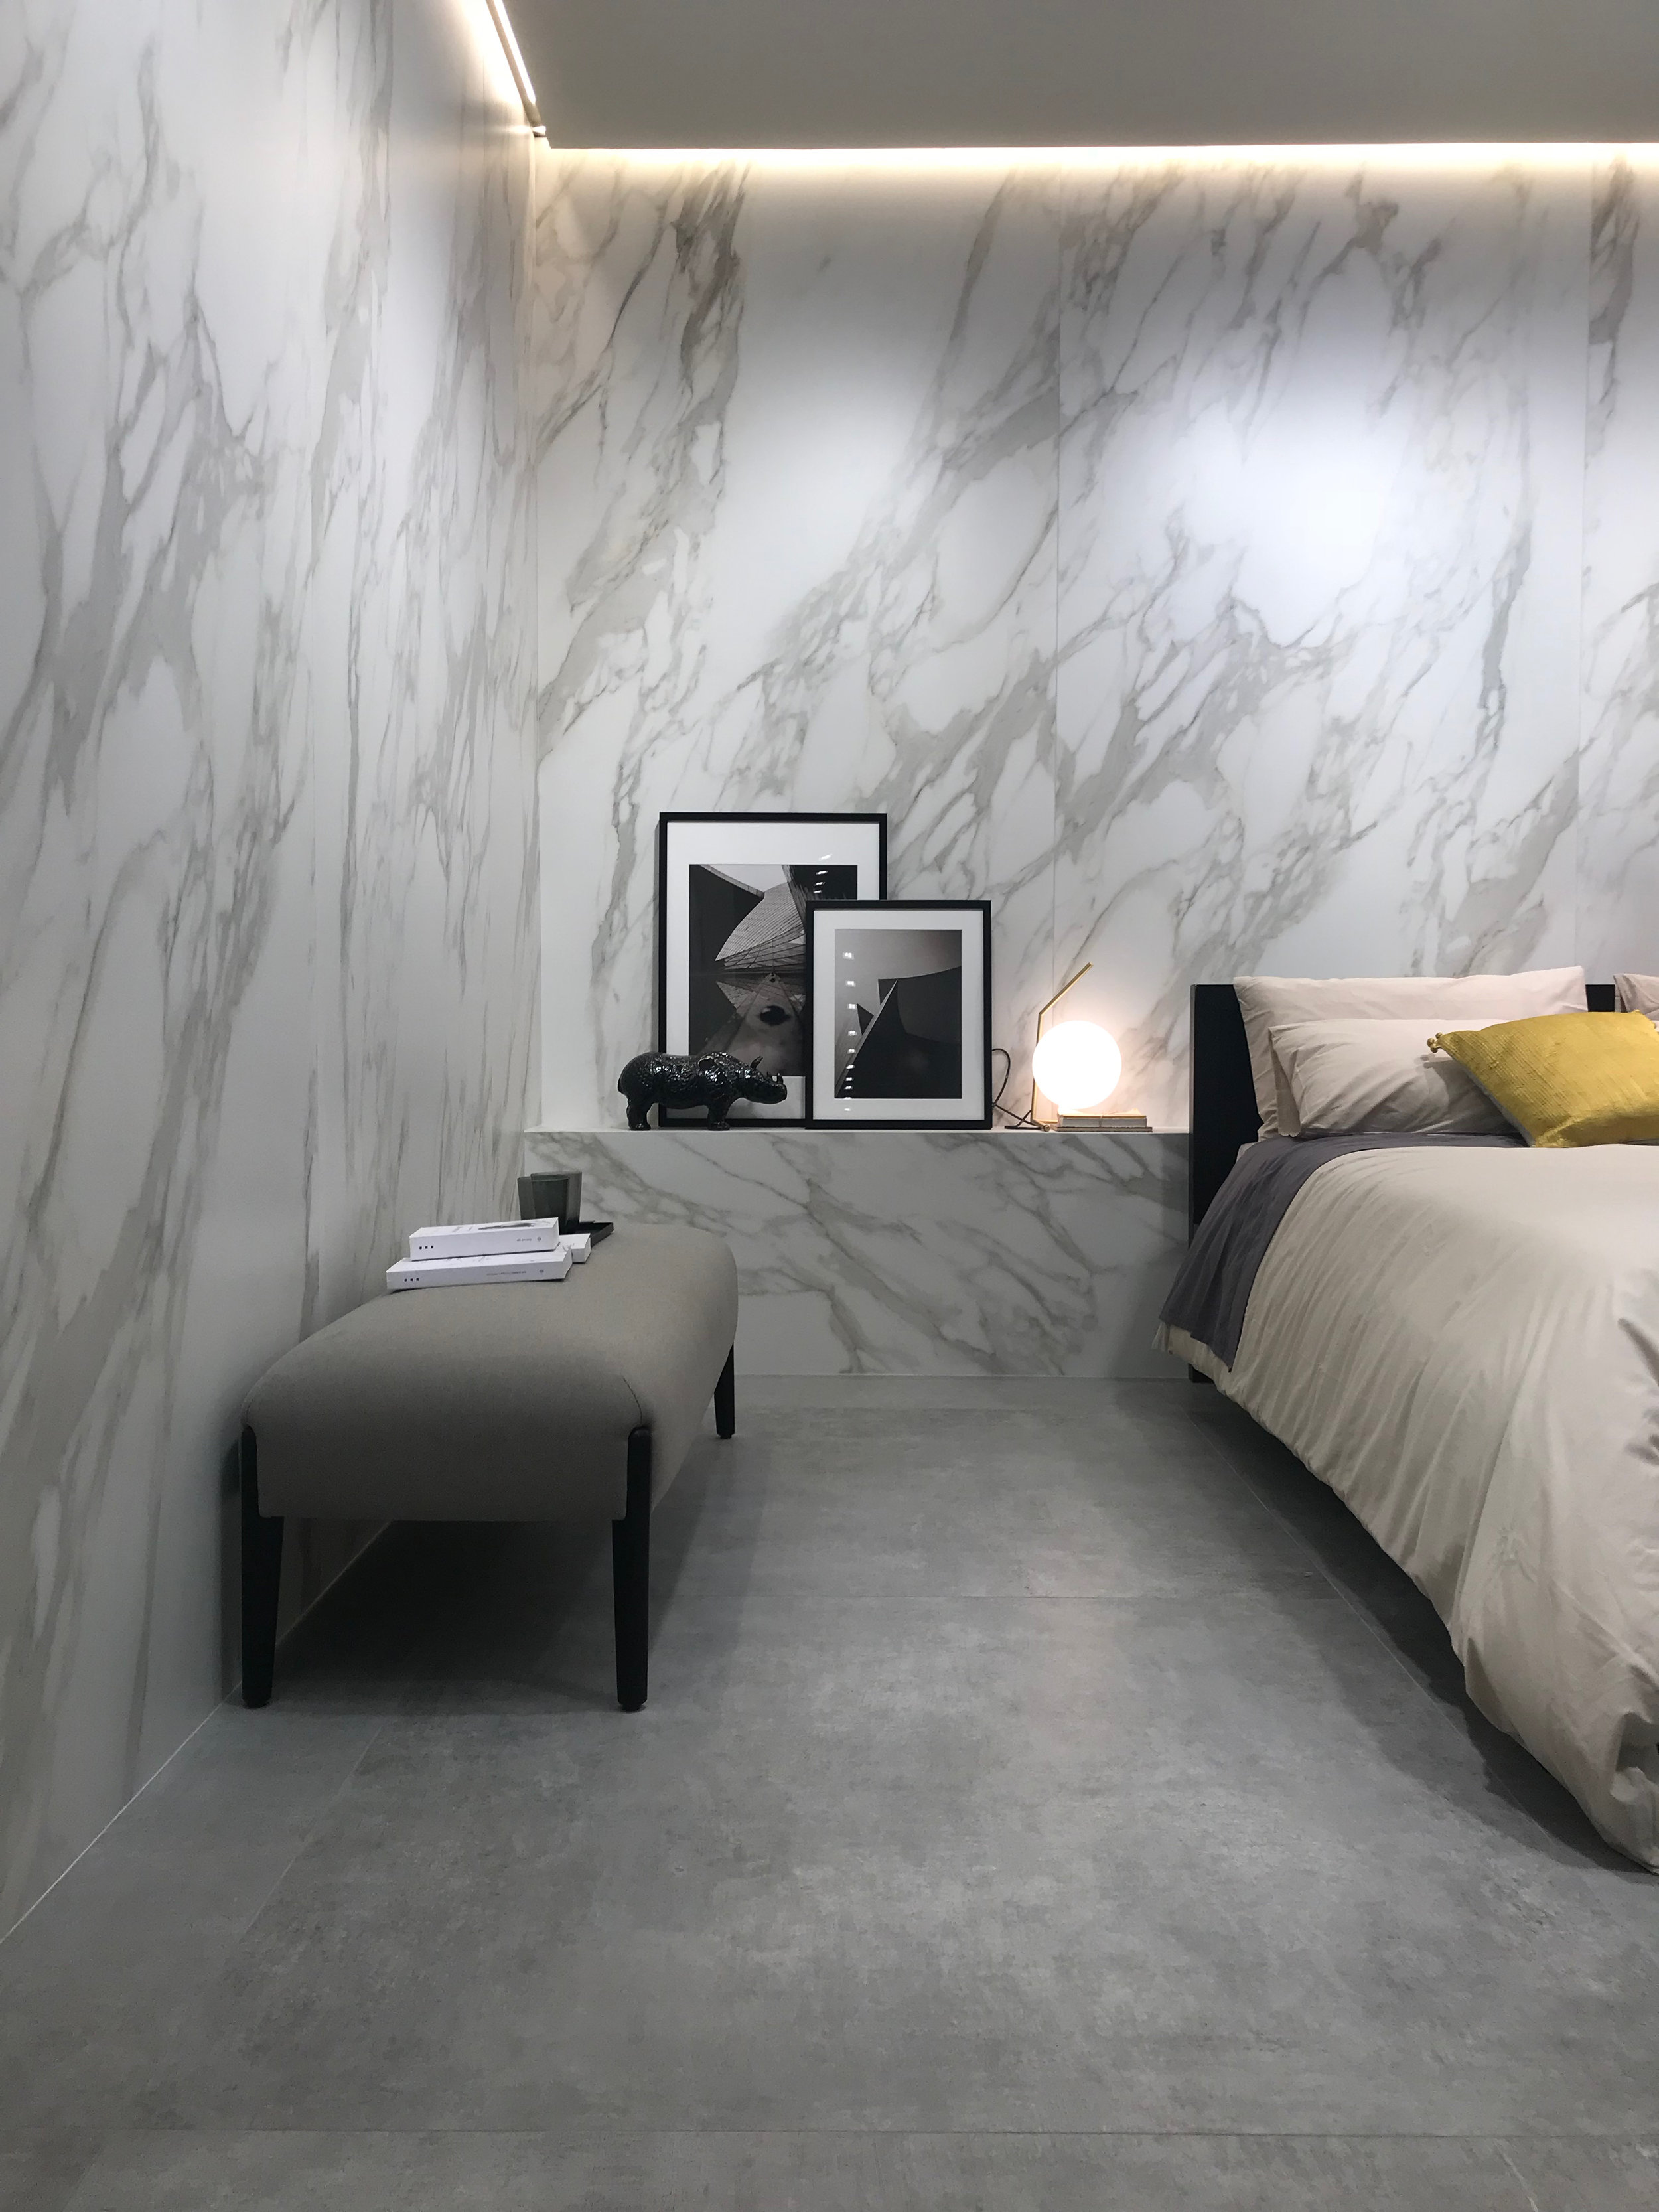 Feature walls can be used in all area of the home. NB: Image is taken from Cersaie 2018